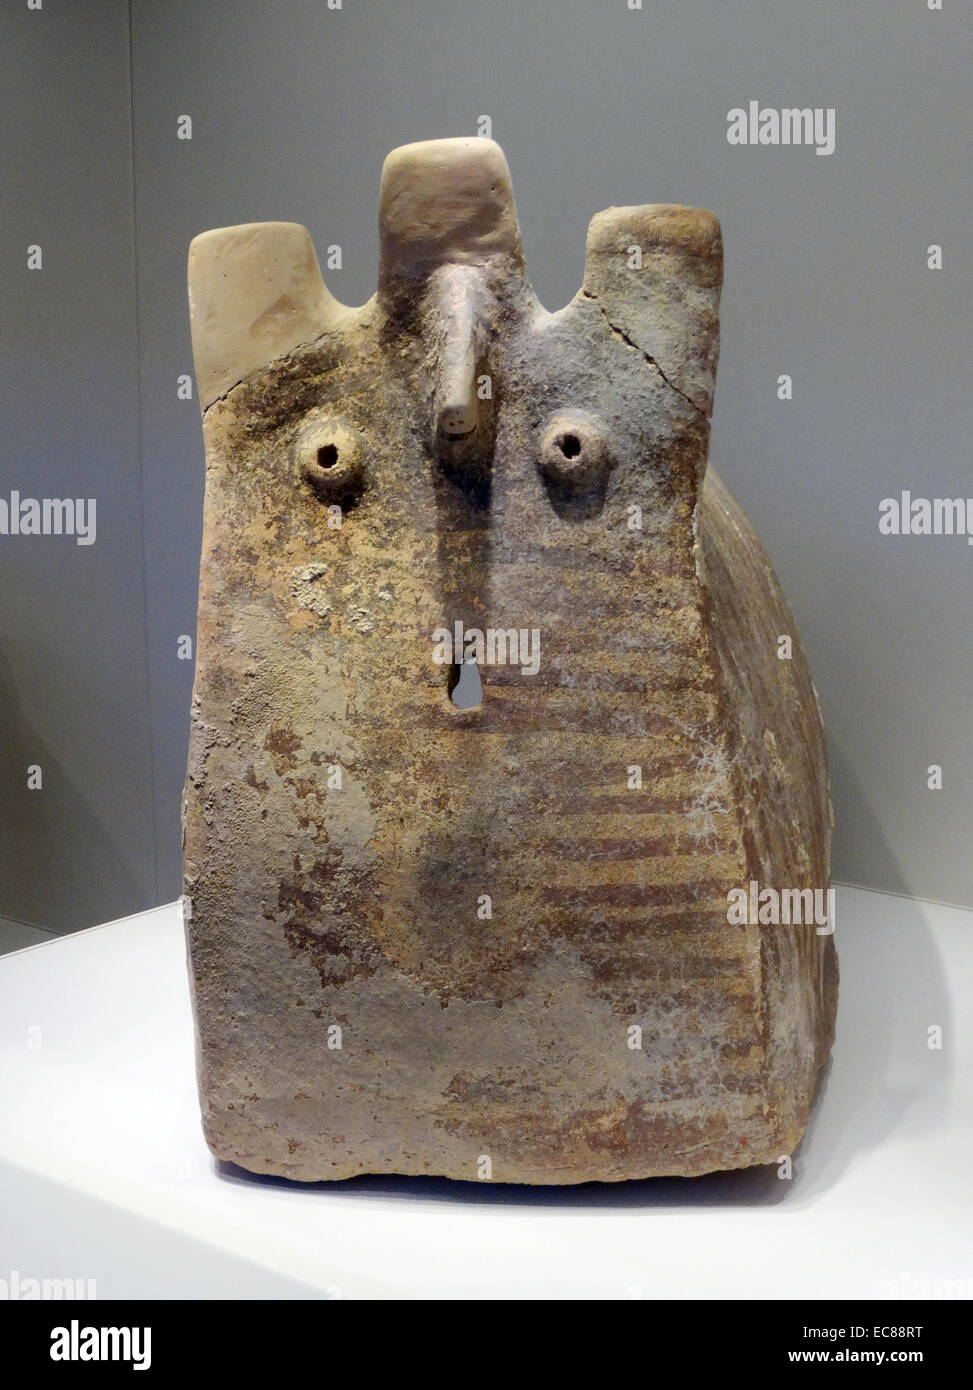 Item from a selection of burial cave items - Stock Image